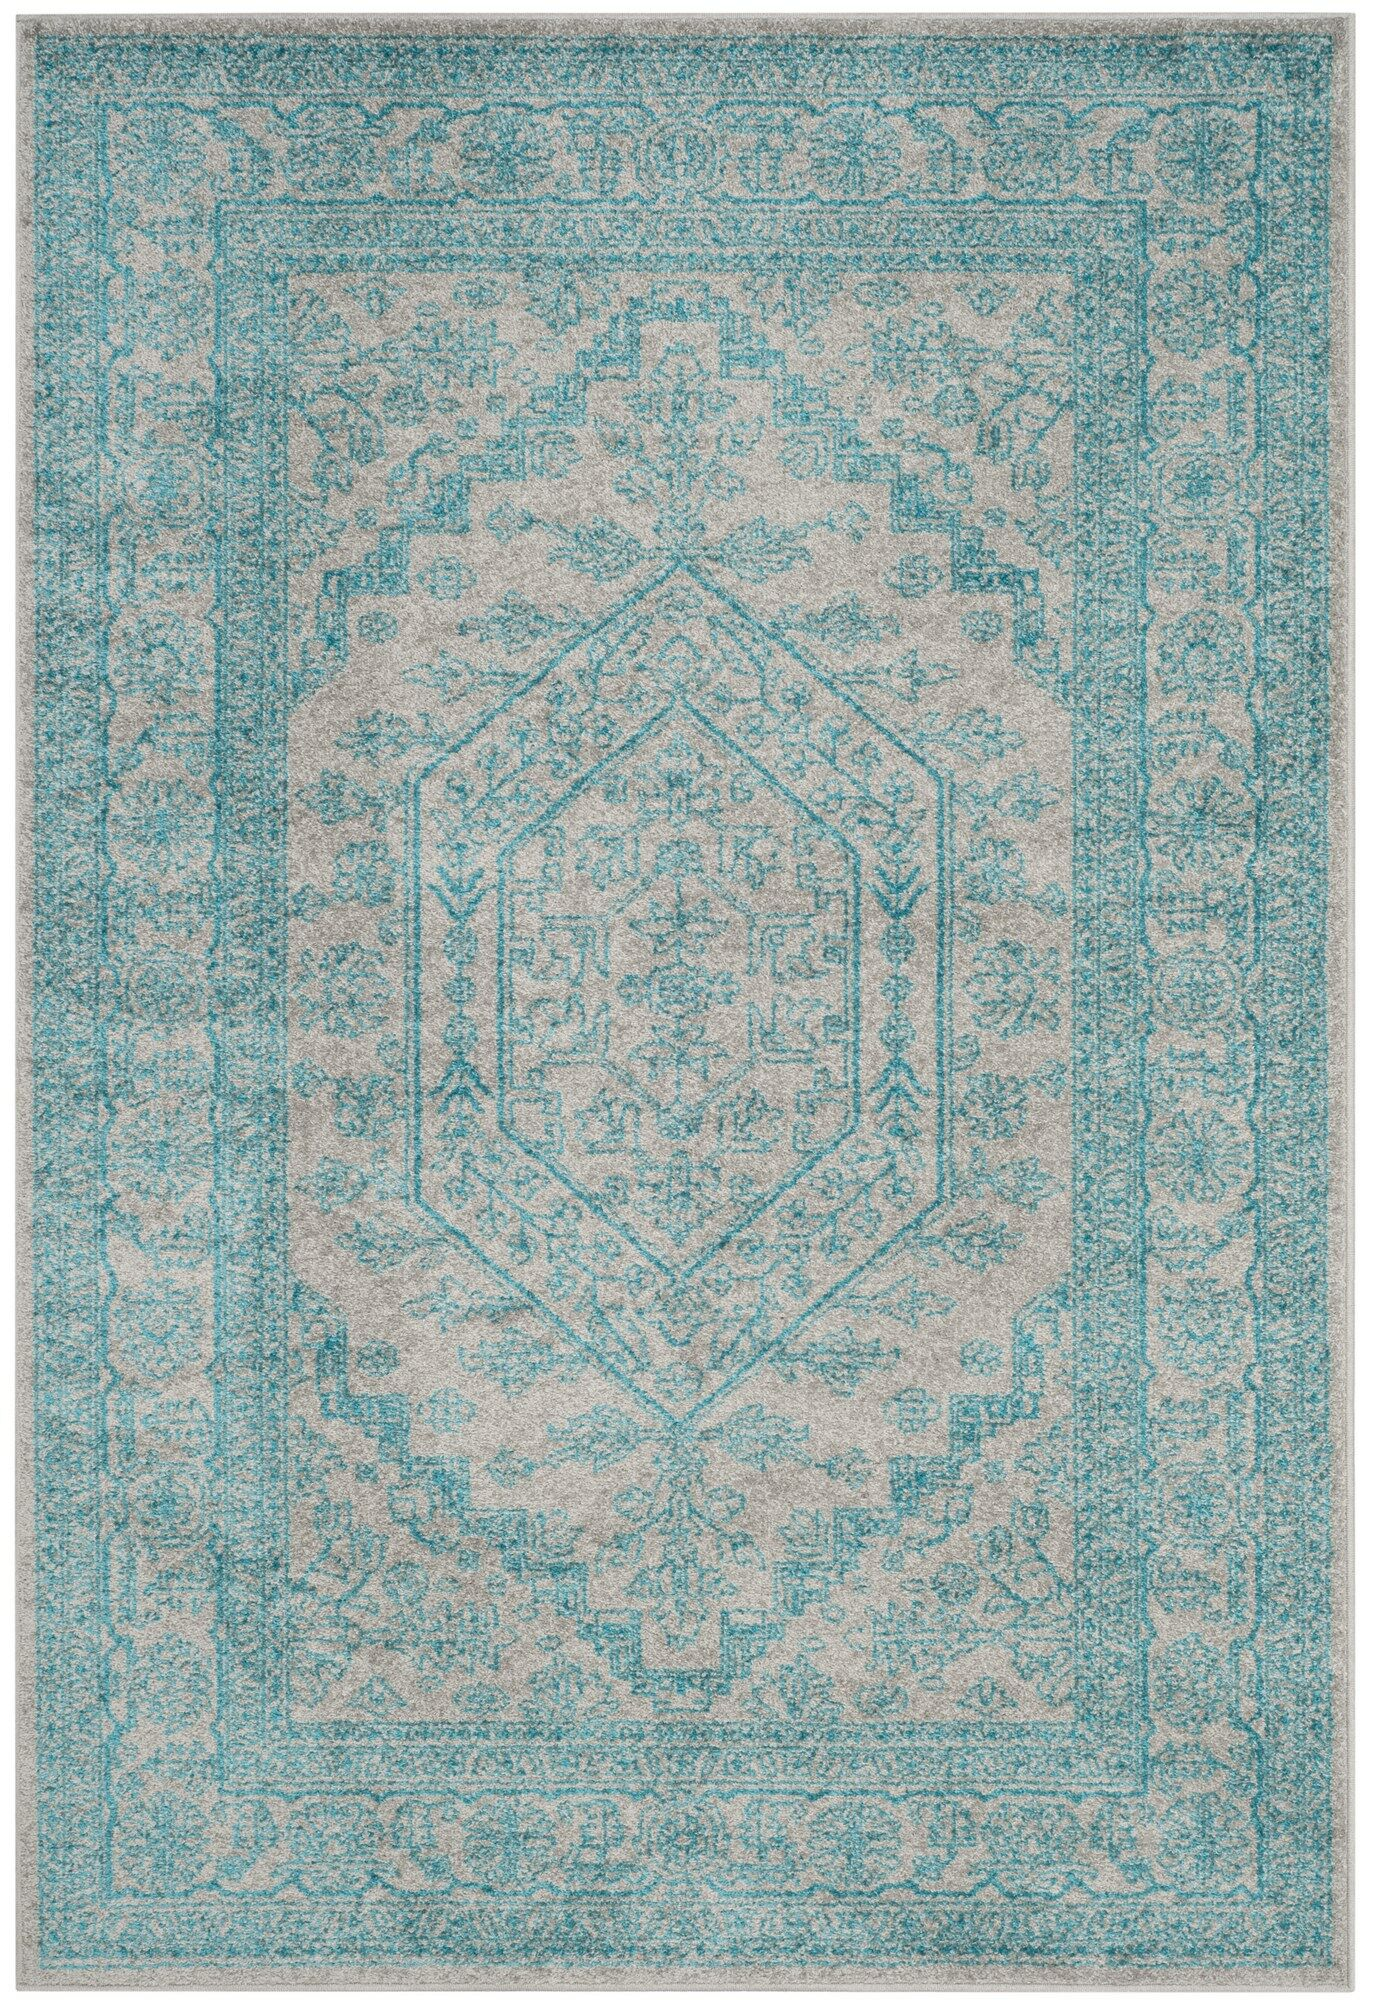 Connie Light Gray/Teal Area Rug Rug Size: Rectangle 8' x 10'